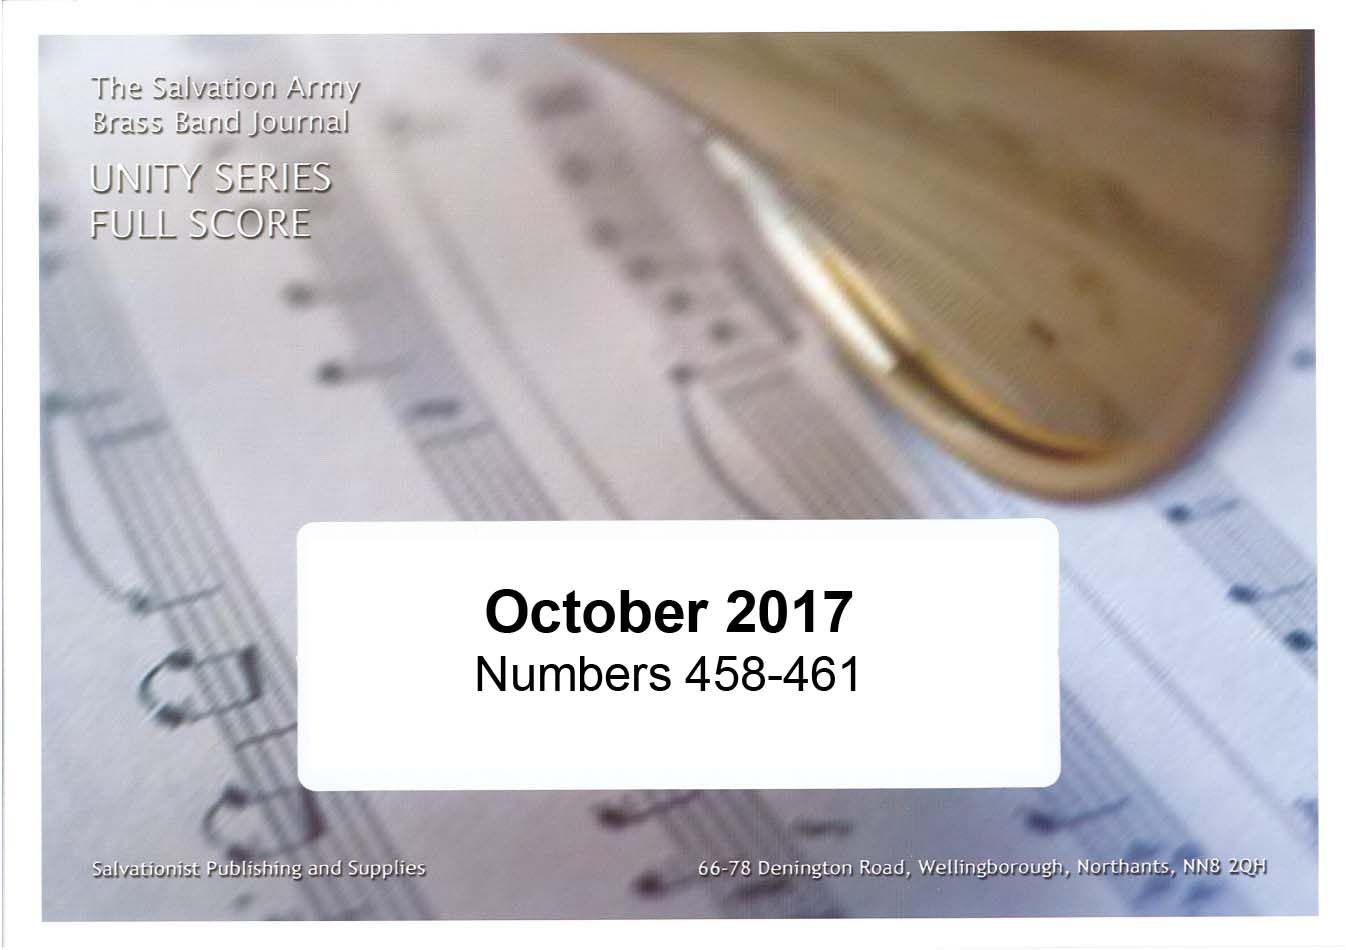 Unity Series Band Journal October 2017 Numbers 458-461